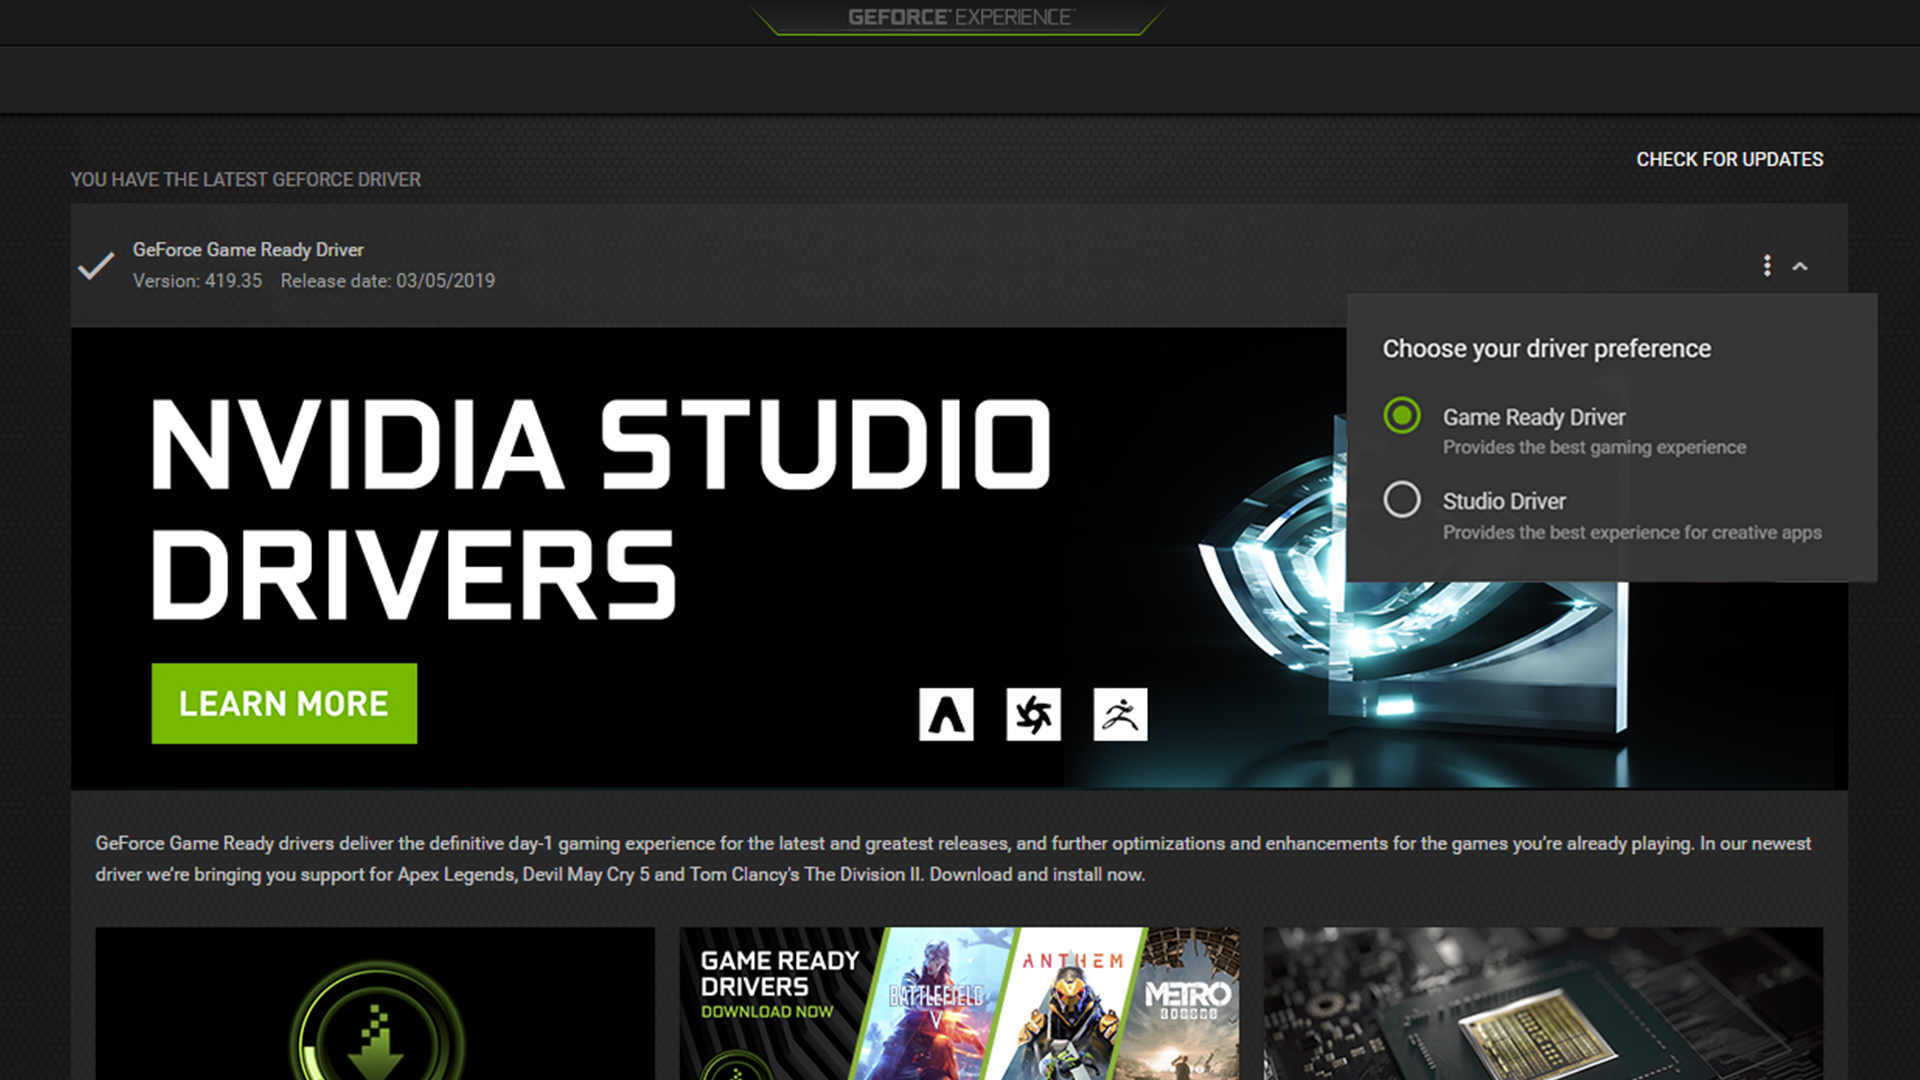 Available Now: NVIDIA Studio Drivers Supercharge Creative Apps